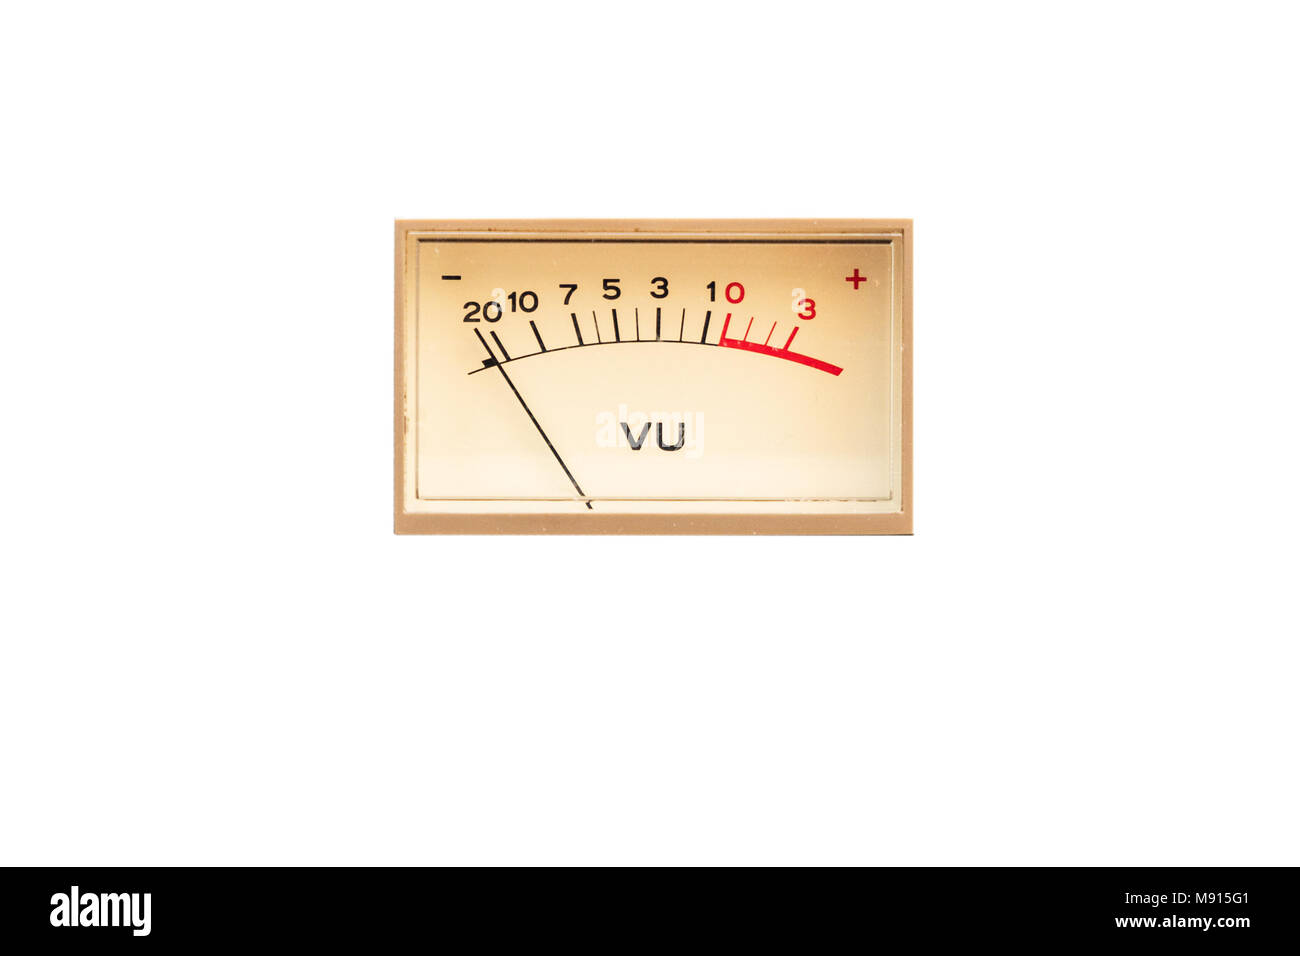 Old analog Dial indicator - Stock Image